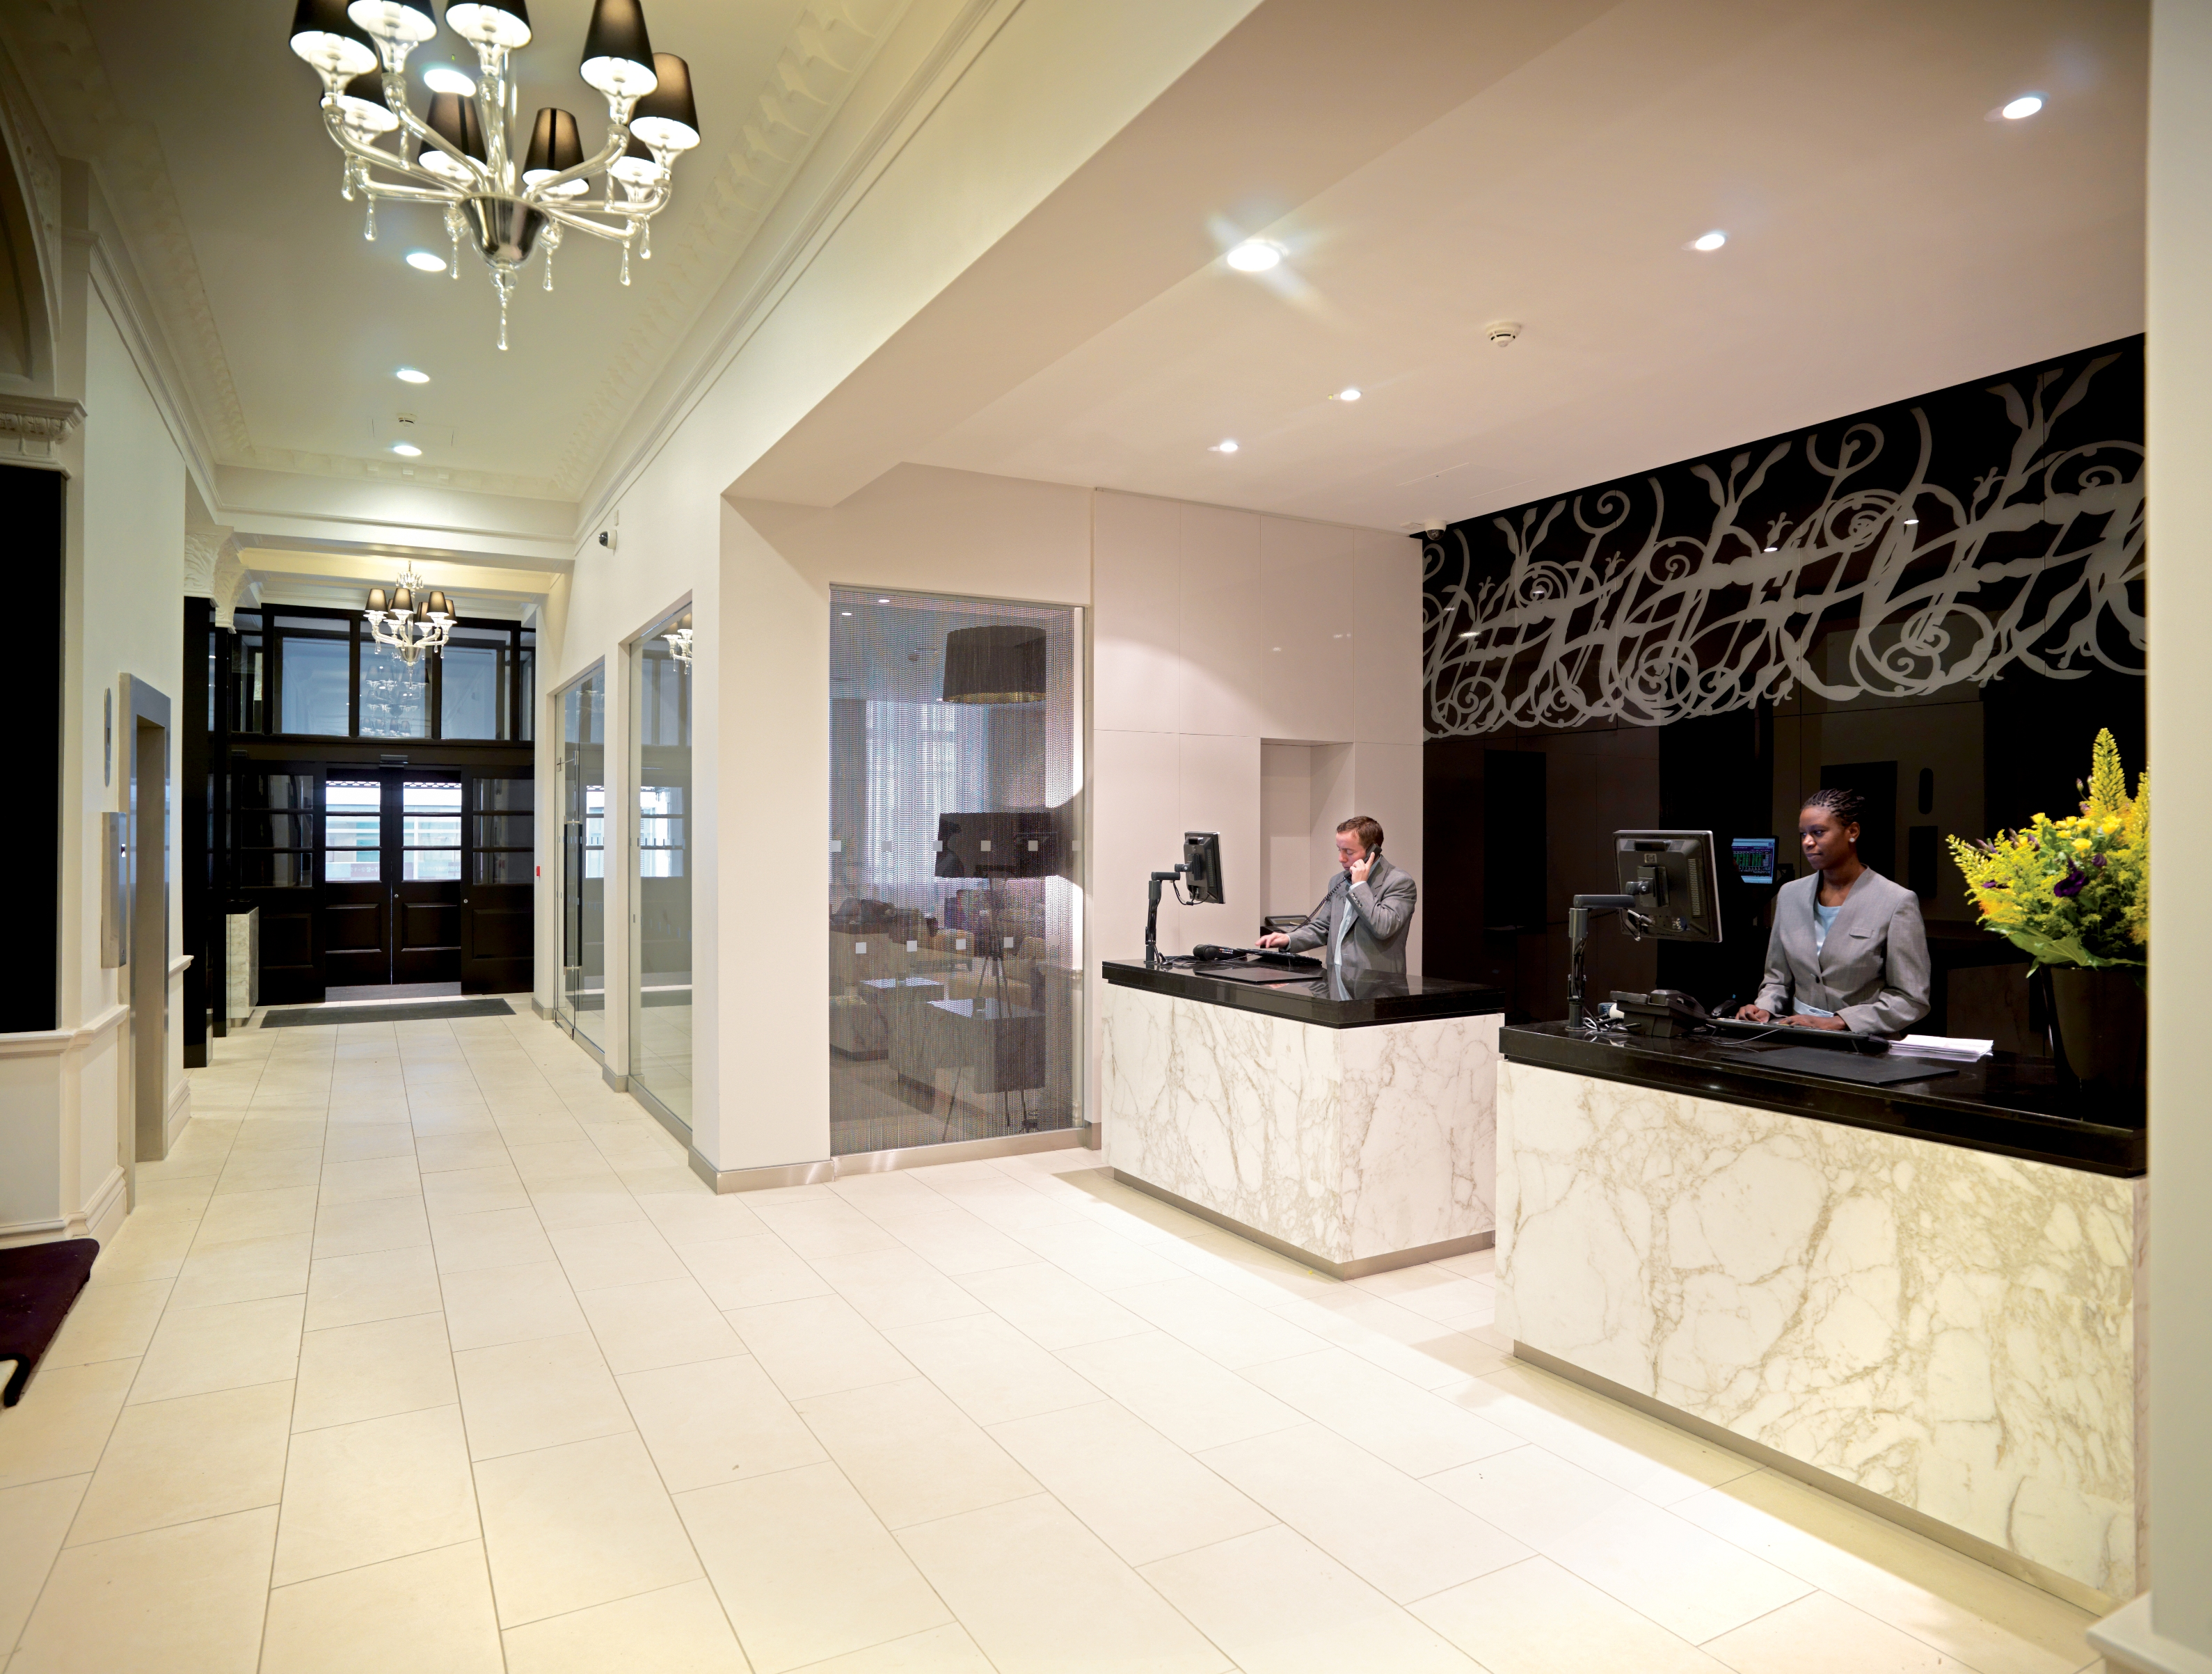 https://www.hotelsbyday.com/_data/default-hotel_image/0/4291/hi-h0bkr-27087782-thistle-london-kg-hotel-reception48.jpg